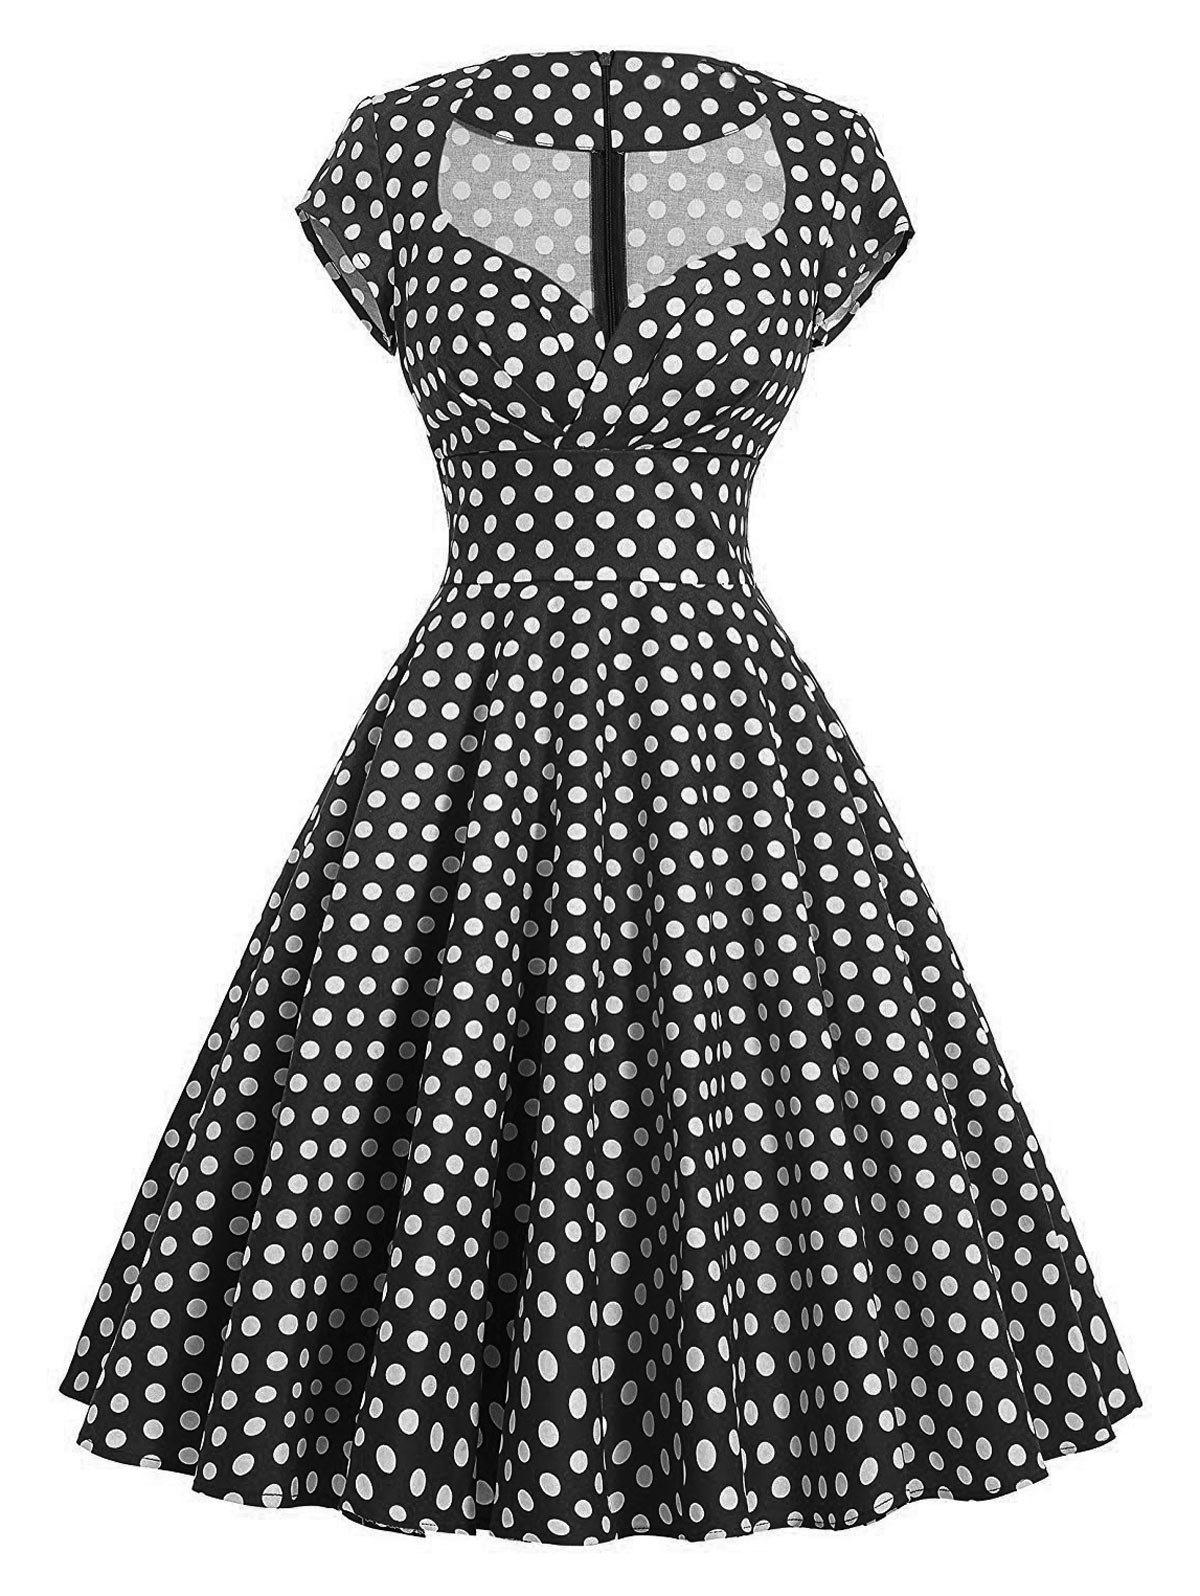 Hot Vintage Polka Dot Swing Pin Up Dress